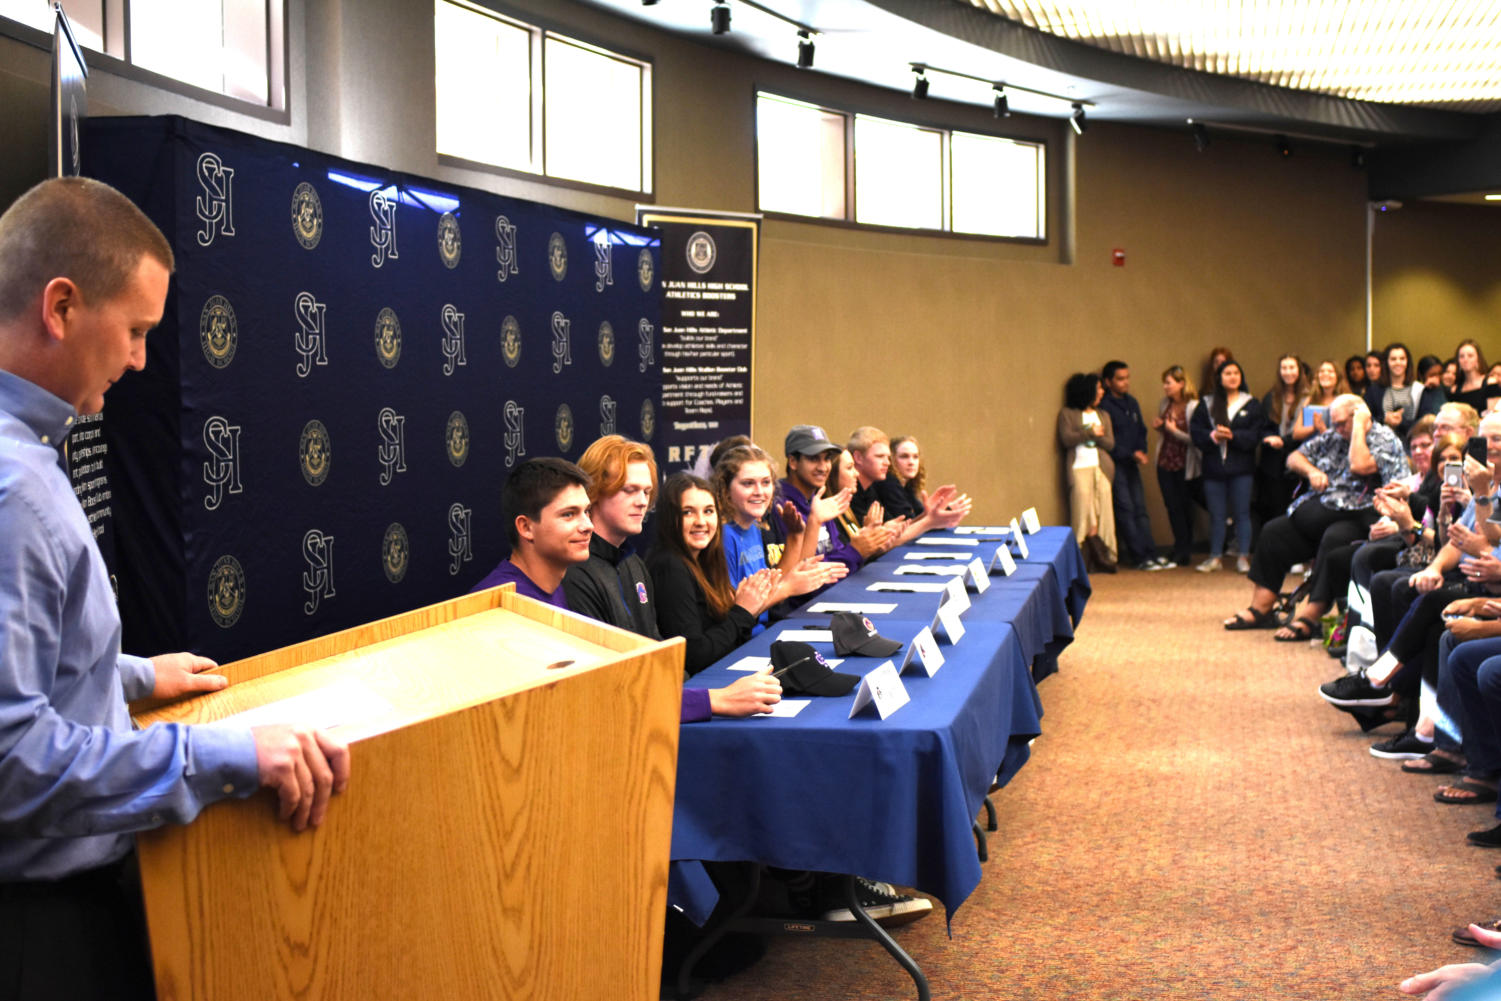 Students at SJHHS sign their letters of intent to colleges that have offered them scholarships to compete in their athletic programs.